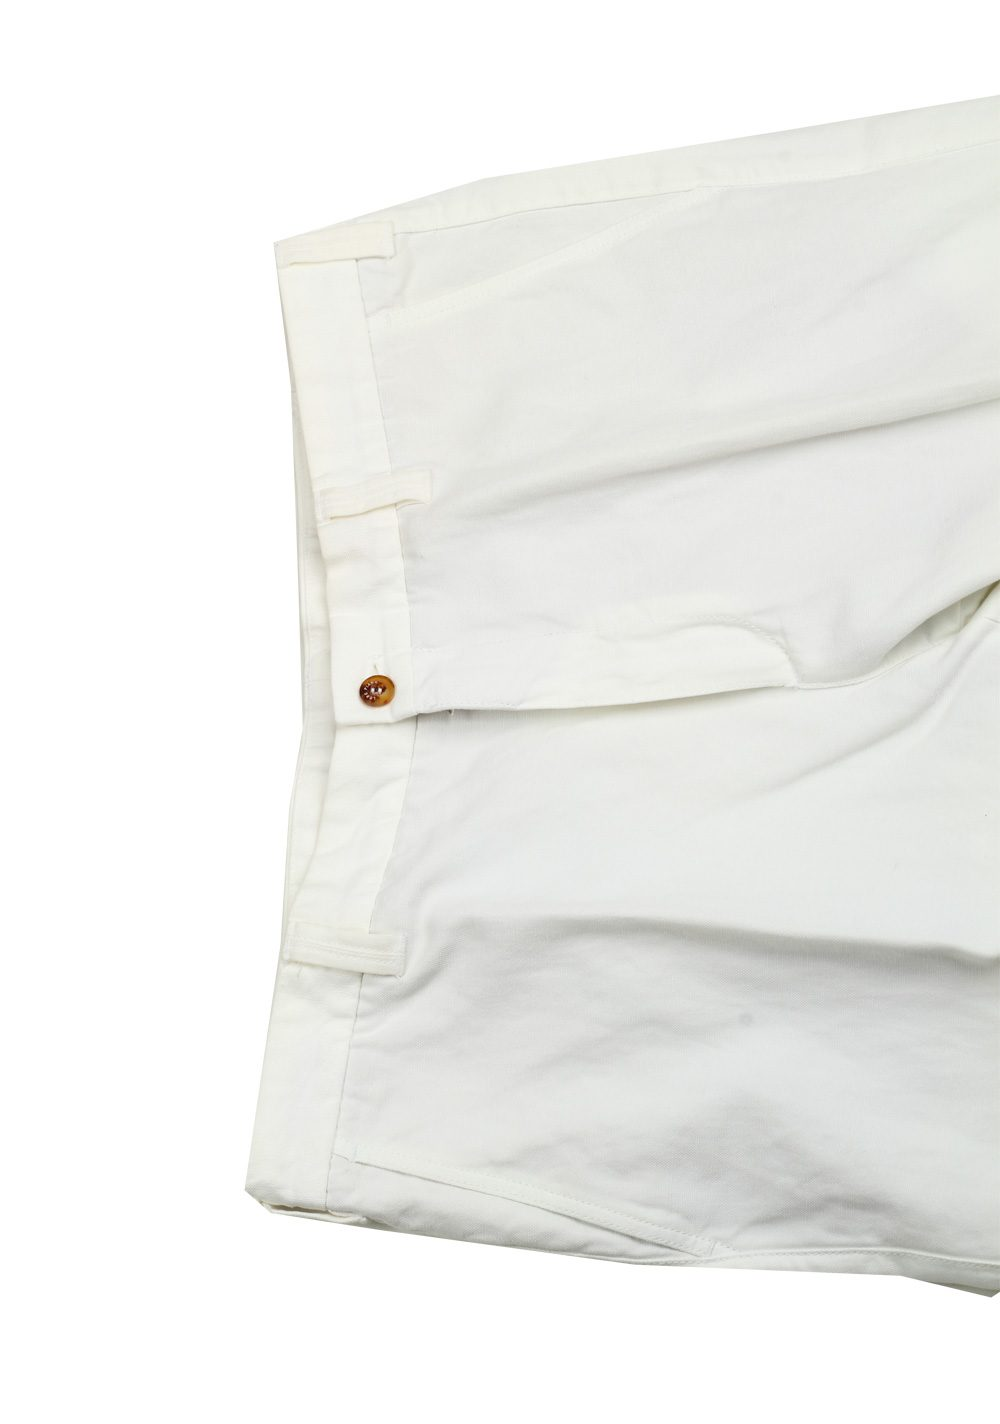 Loro Piana White Trousers Size 50 / 34 U.S. | Costume Limité